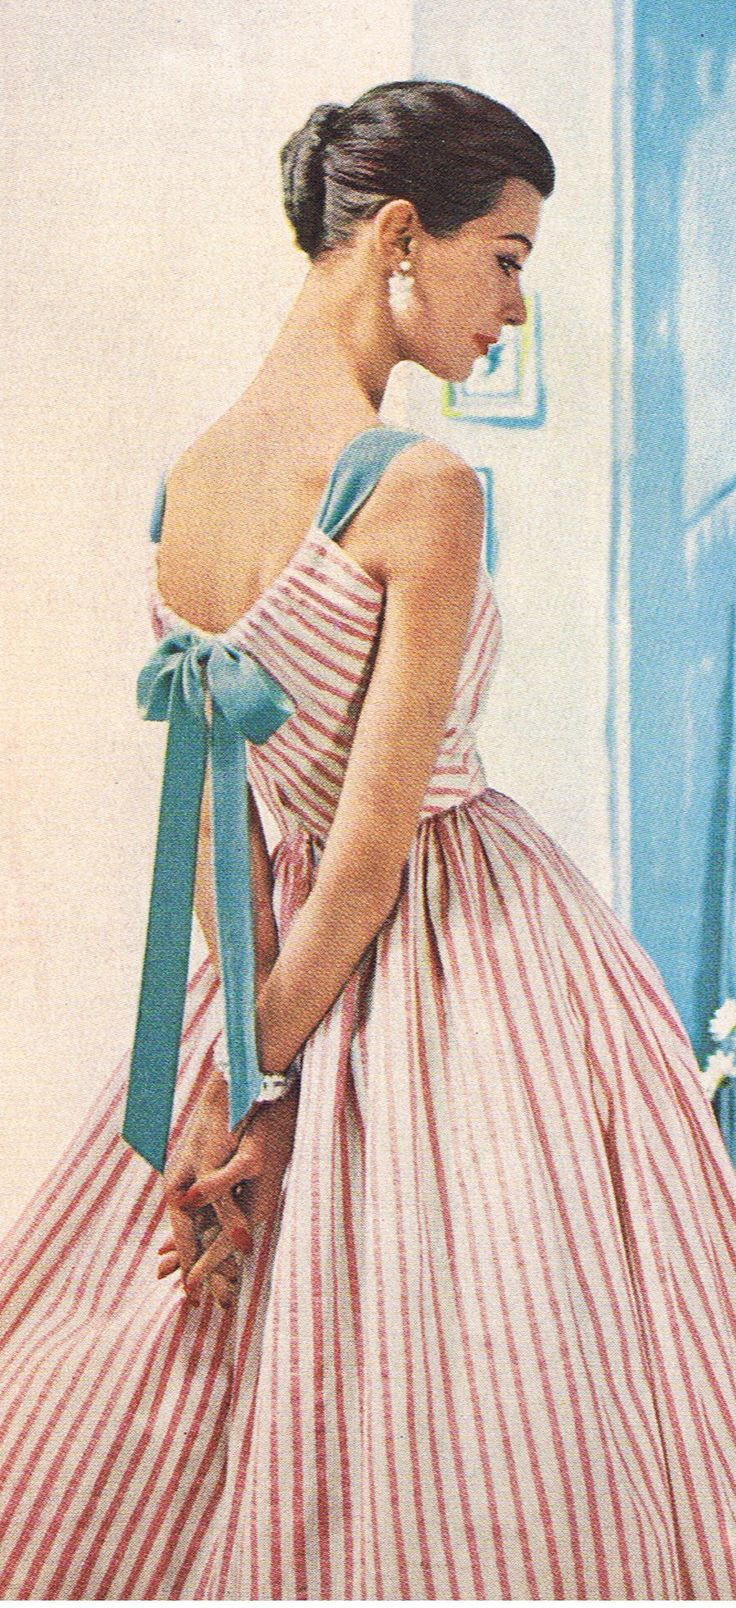 stripes and bows #vintage #1950s <3